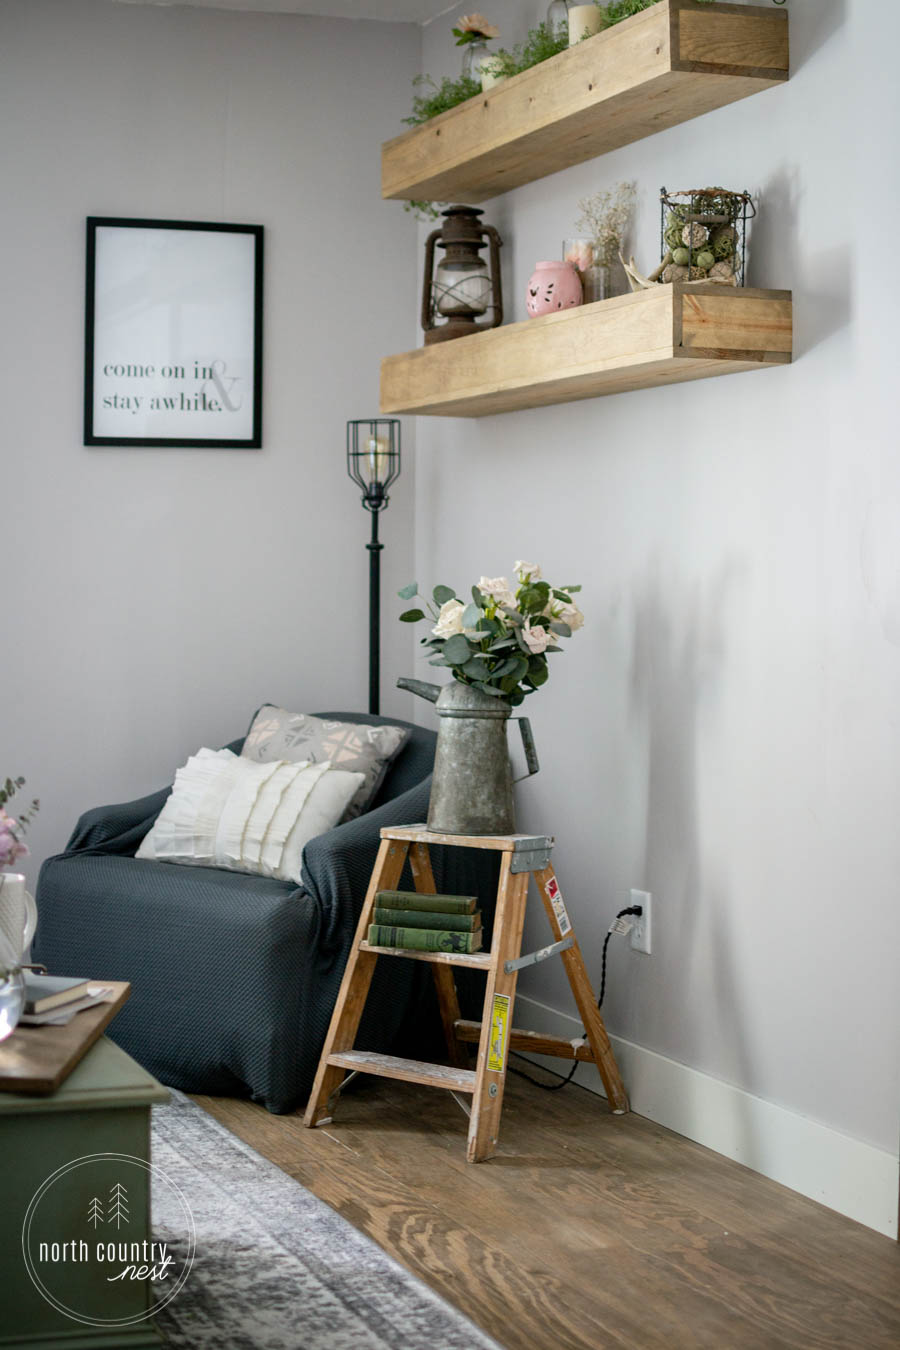 spring bedroom decor and reading nook with flowers